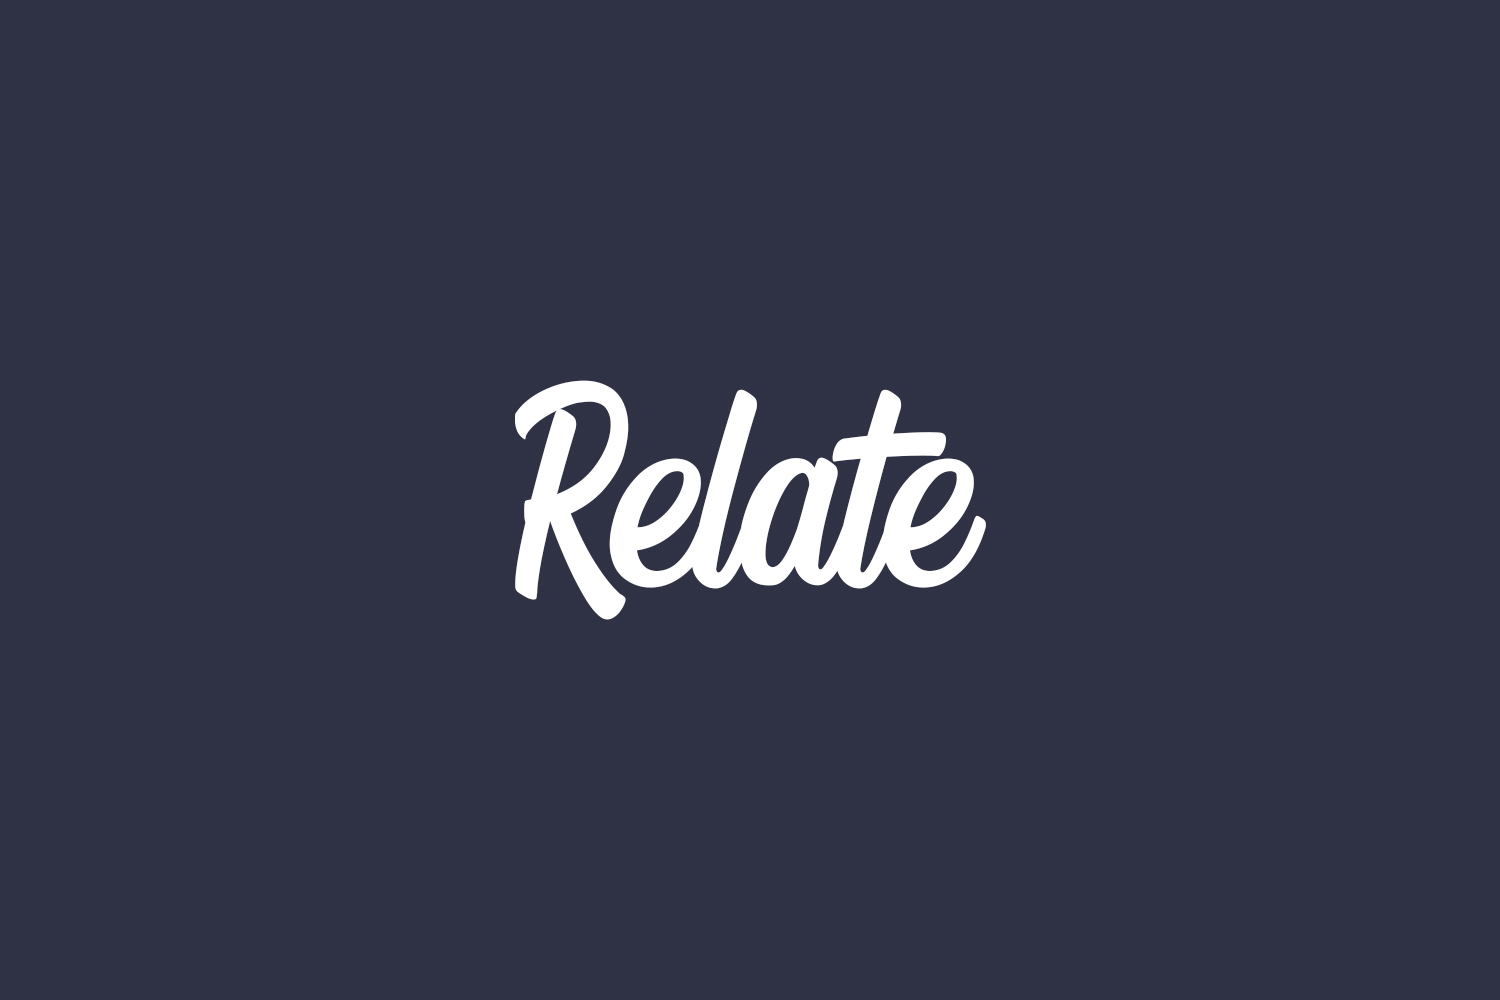 Relate Free Font